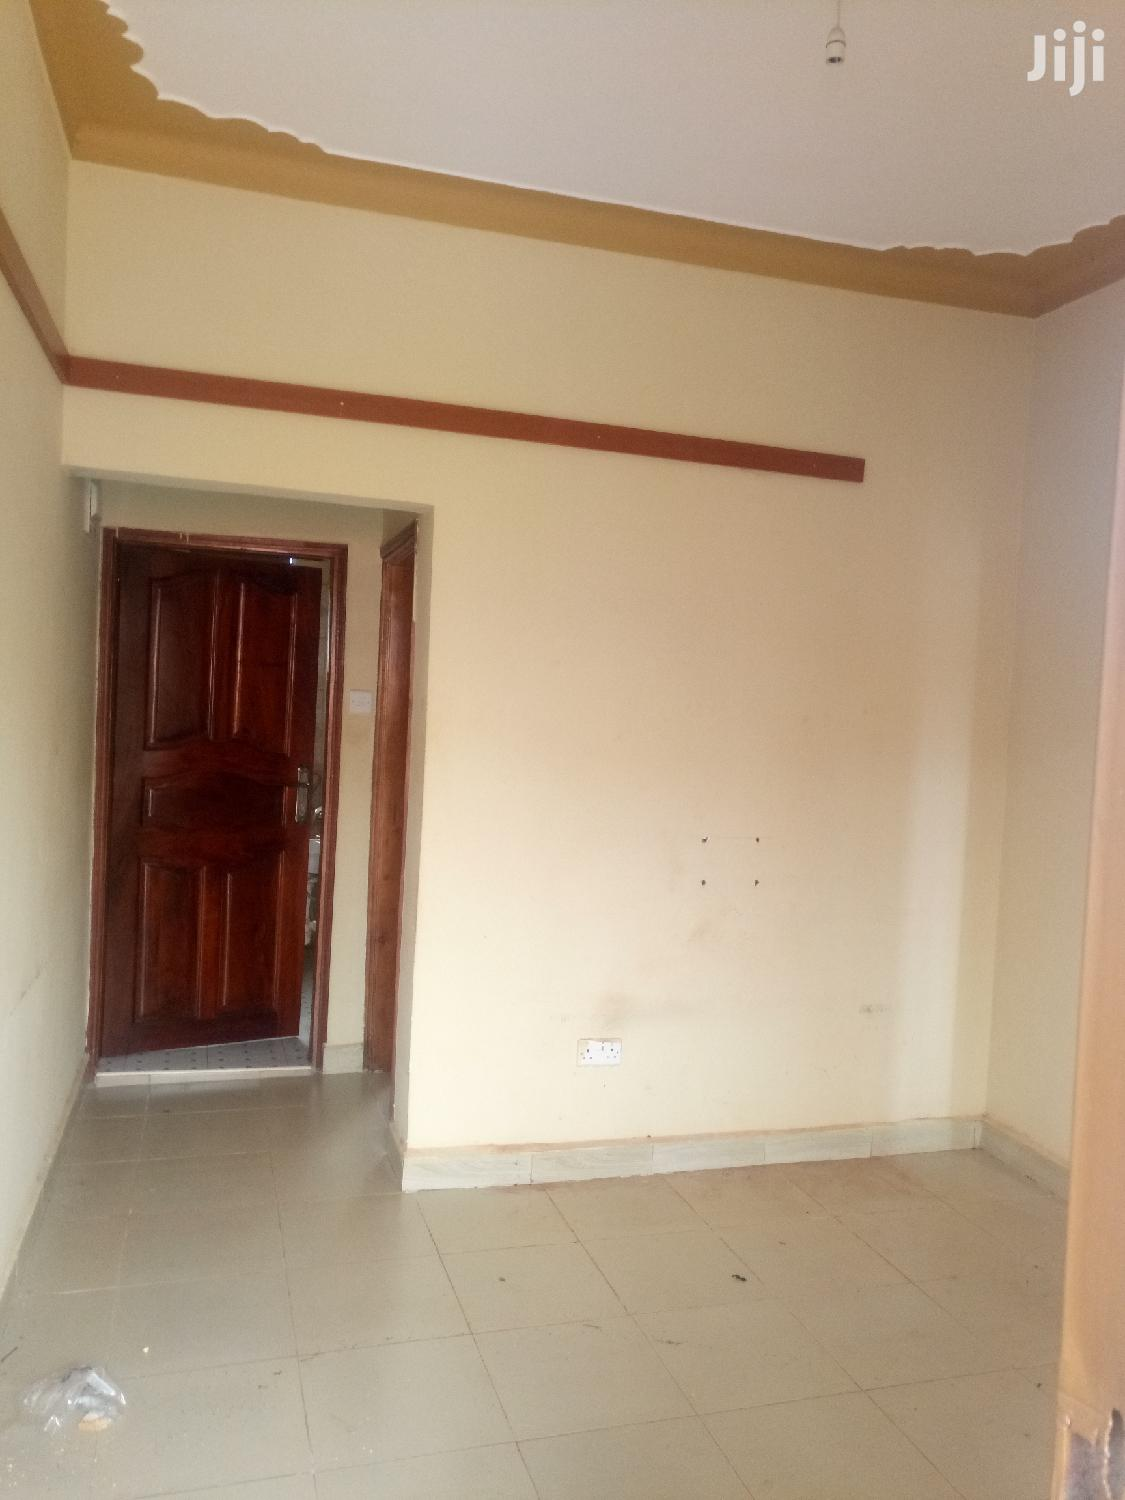 One Bedroom House for Rent in Kisaasi | Houses & Apartments For Rent for sale in Kampala, Central Region, Uganda